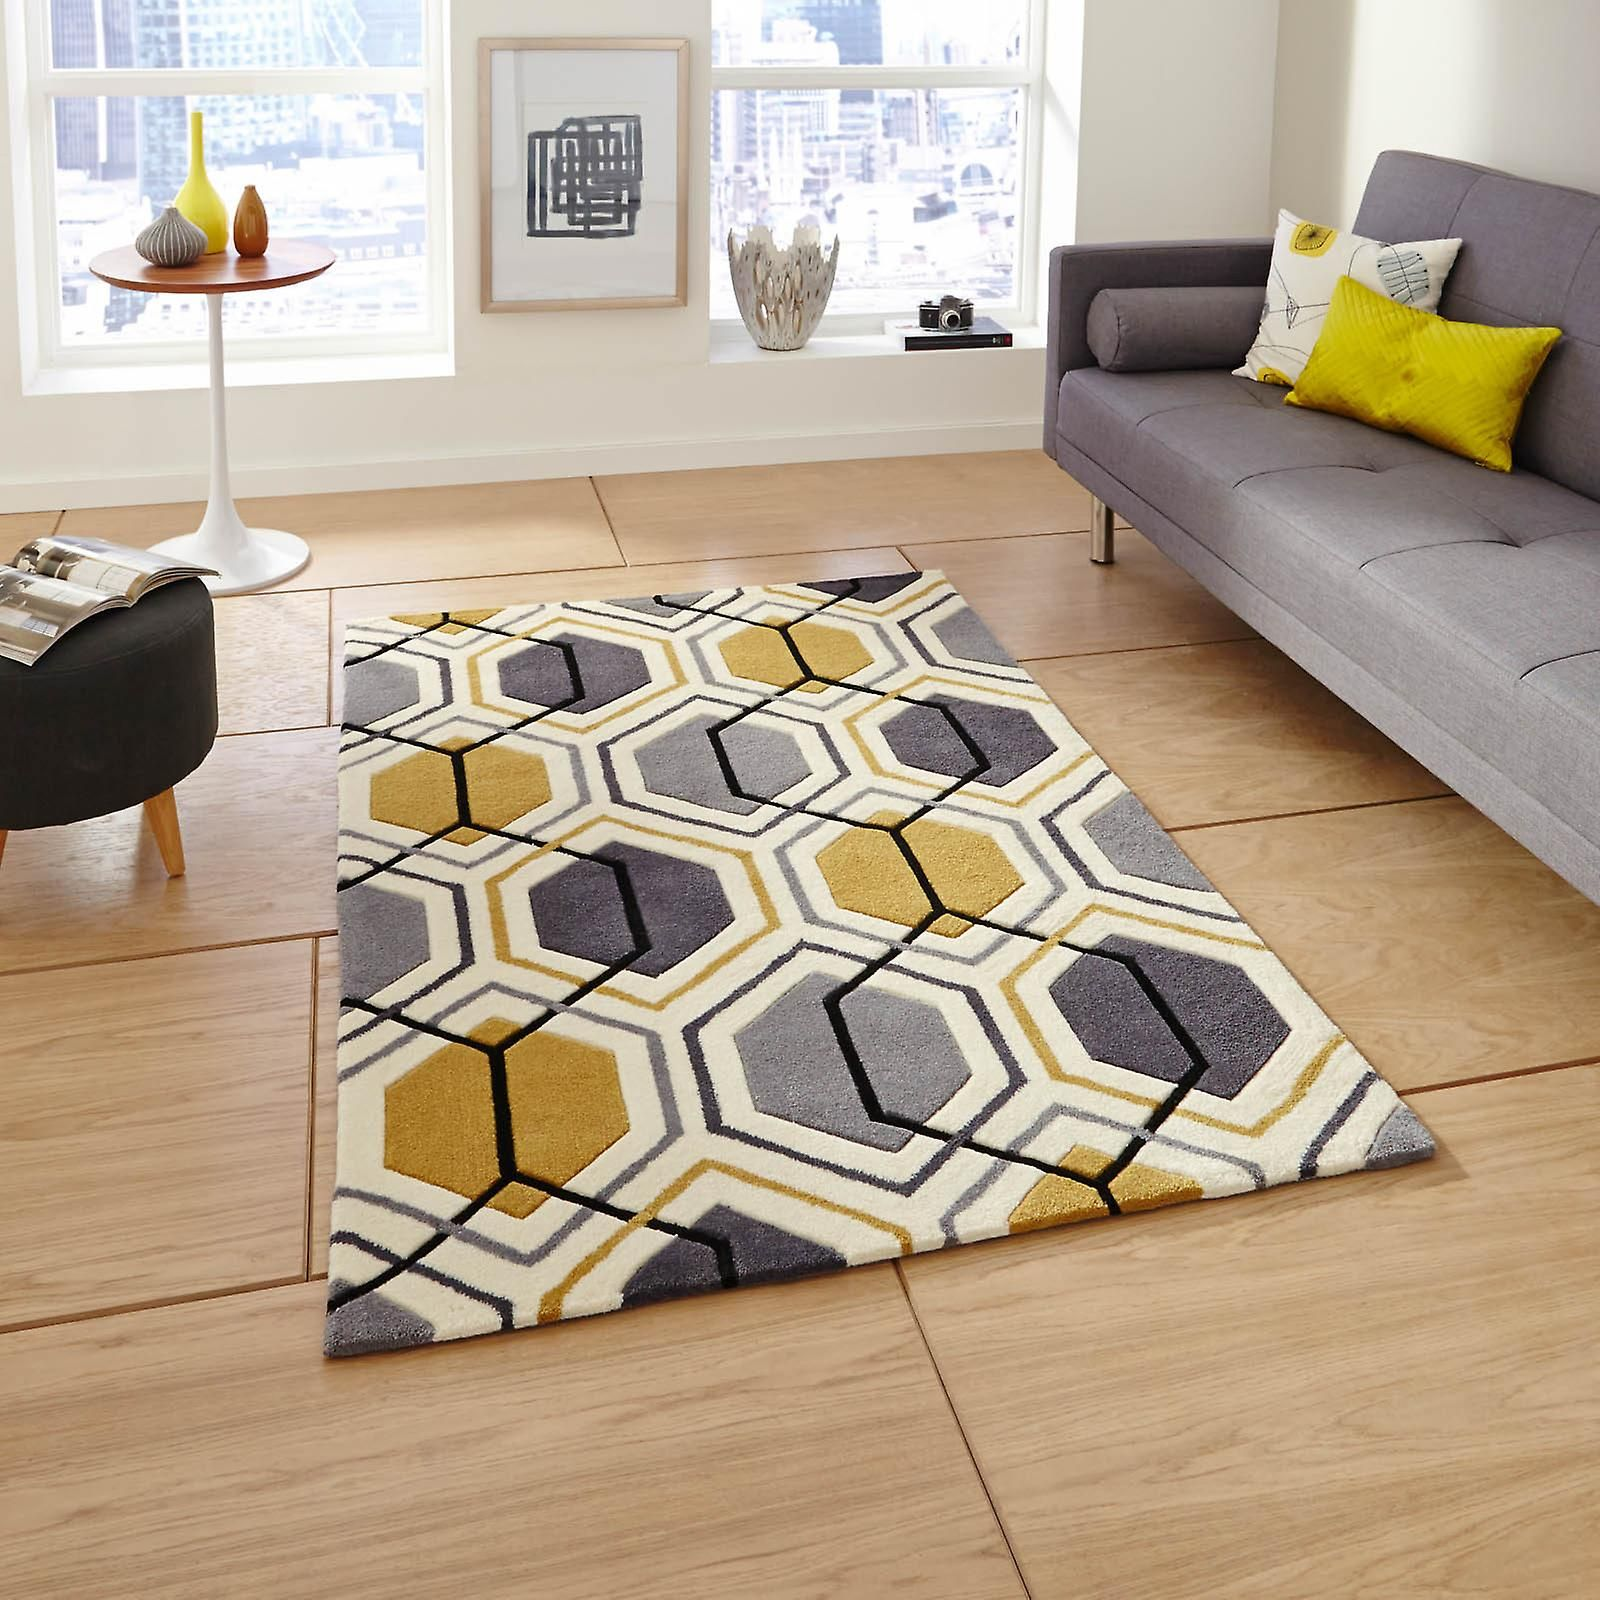 Hong kong hk 7526 tapis gris jaune bondy pinterest for Tapis salon jaune et gris